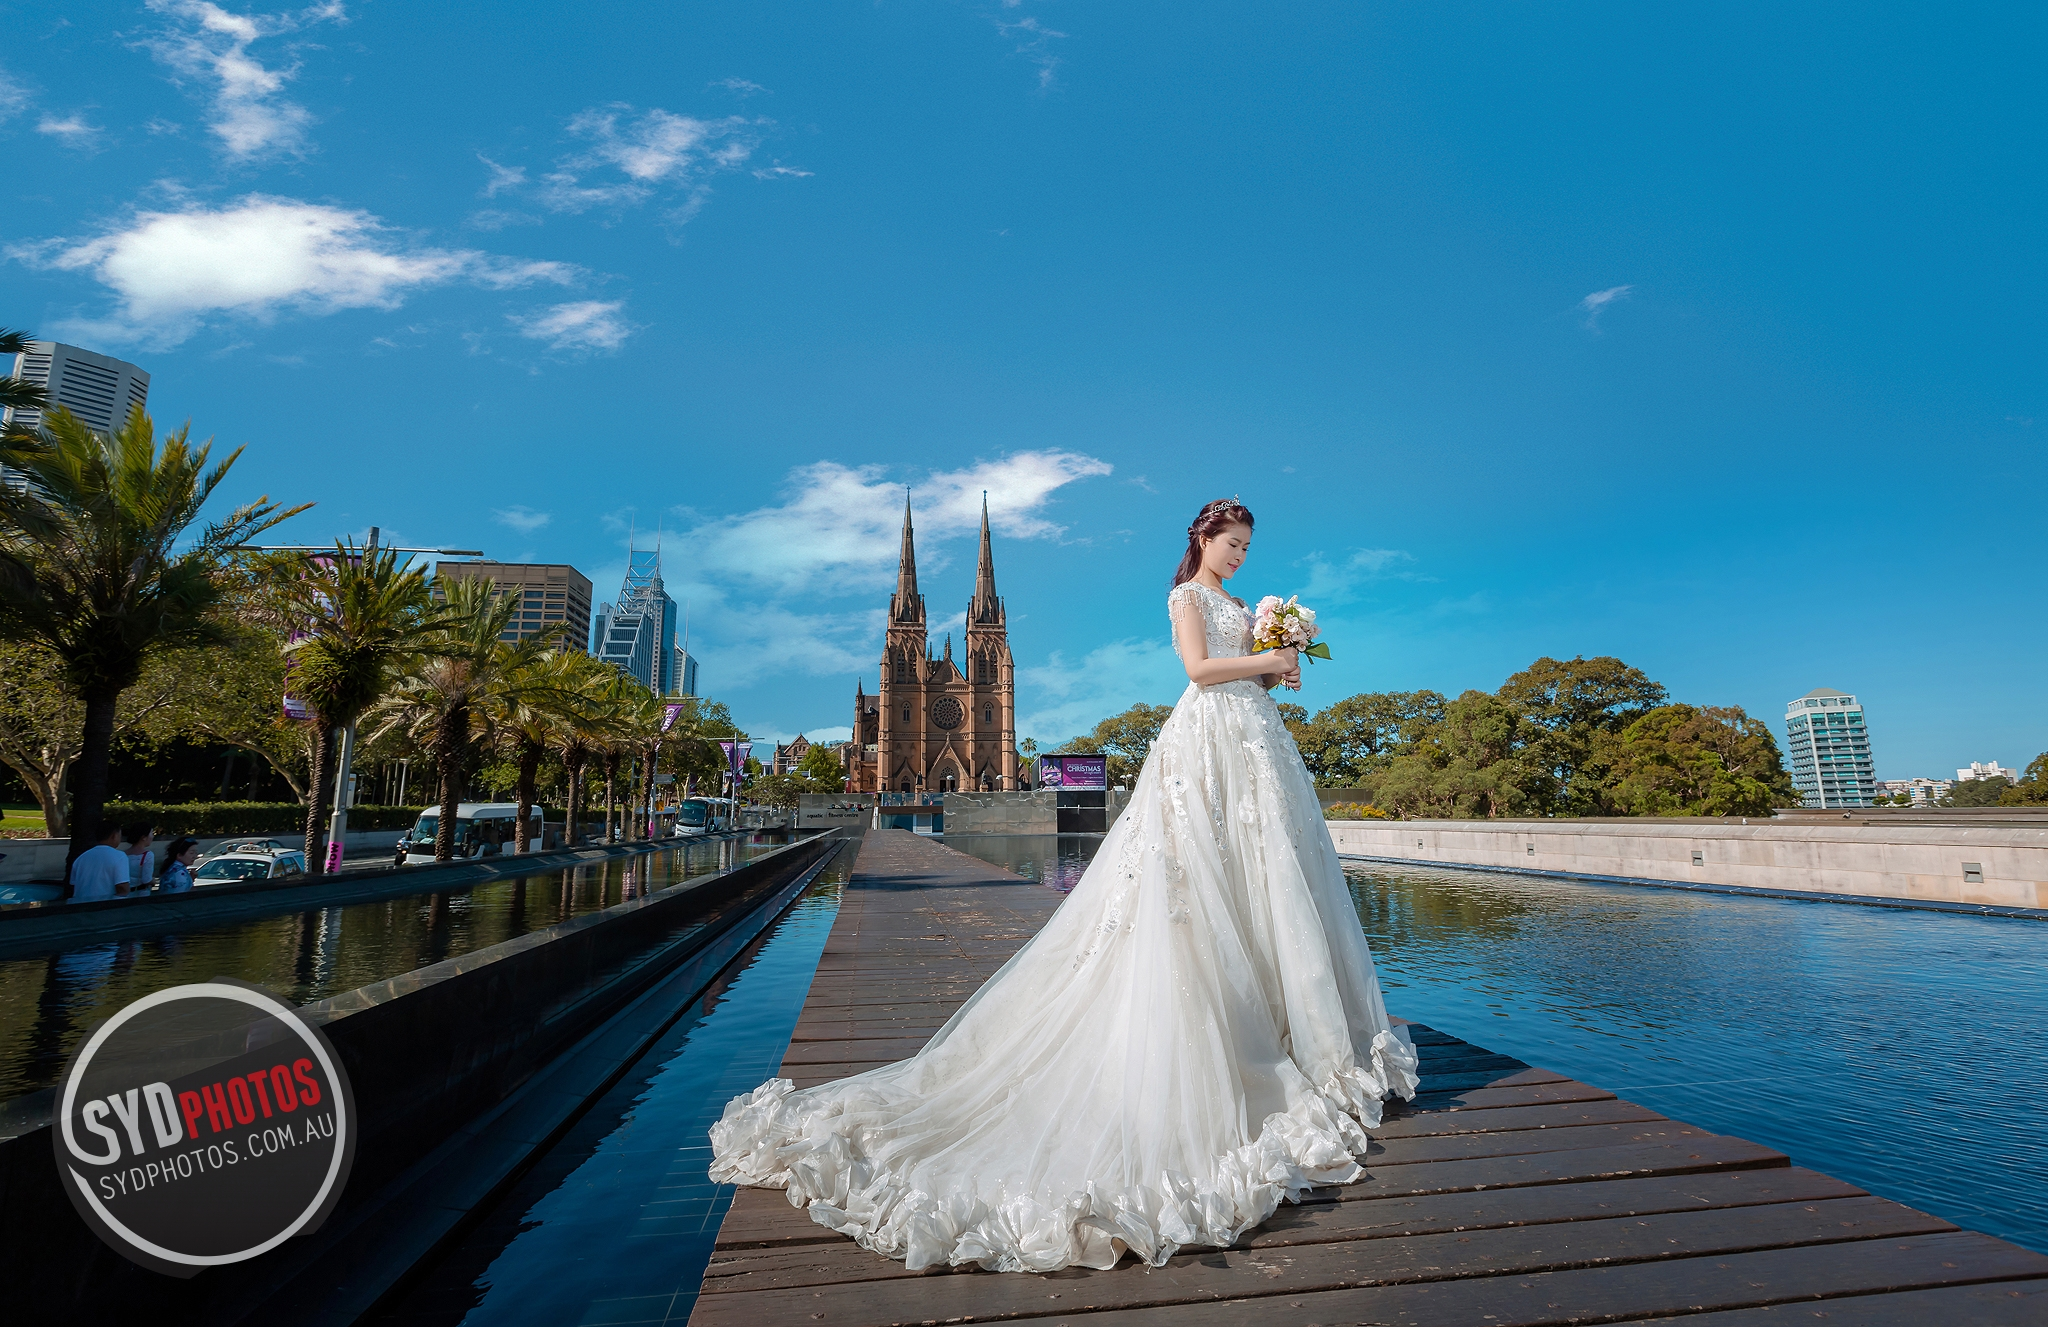 ID-93424-20171210-Cathrine-102.jpg, By Photographer Prewedding, Created on 28 Jan 2018, SYDPHOTOS Photography all rights reserved.